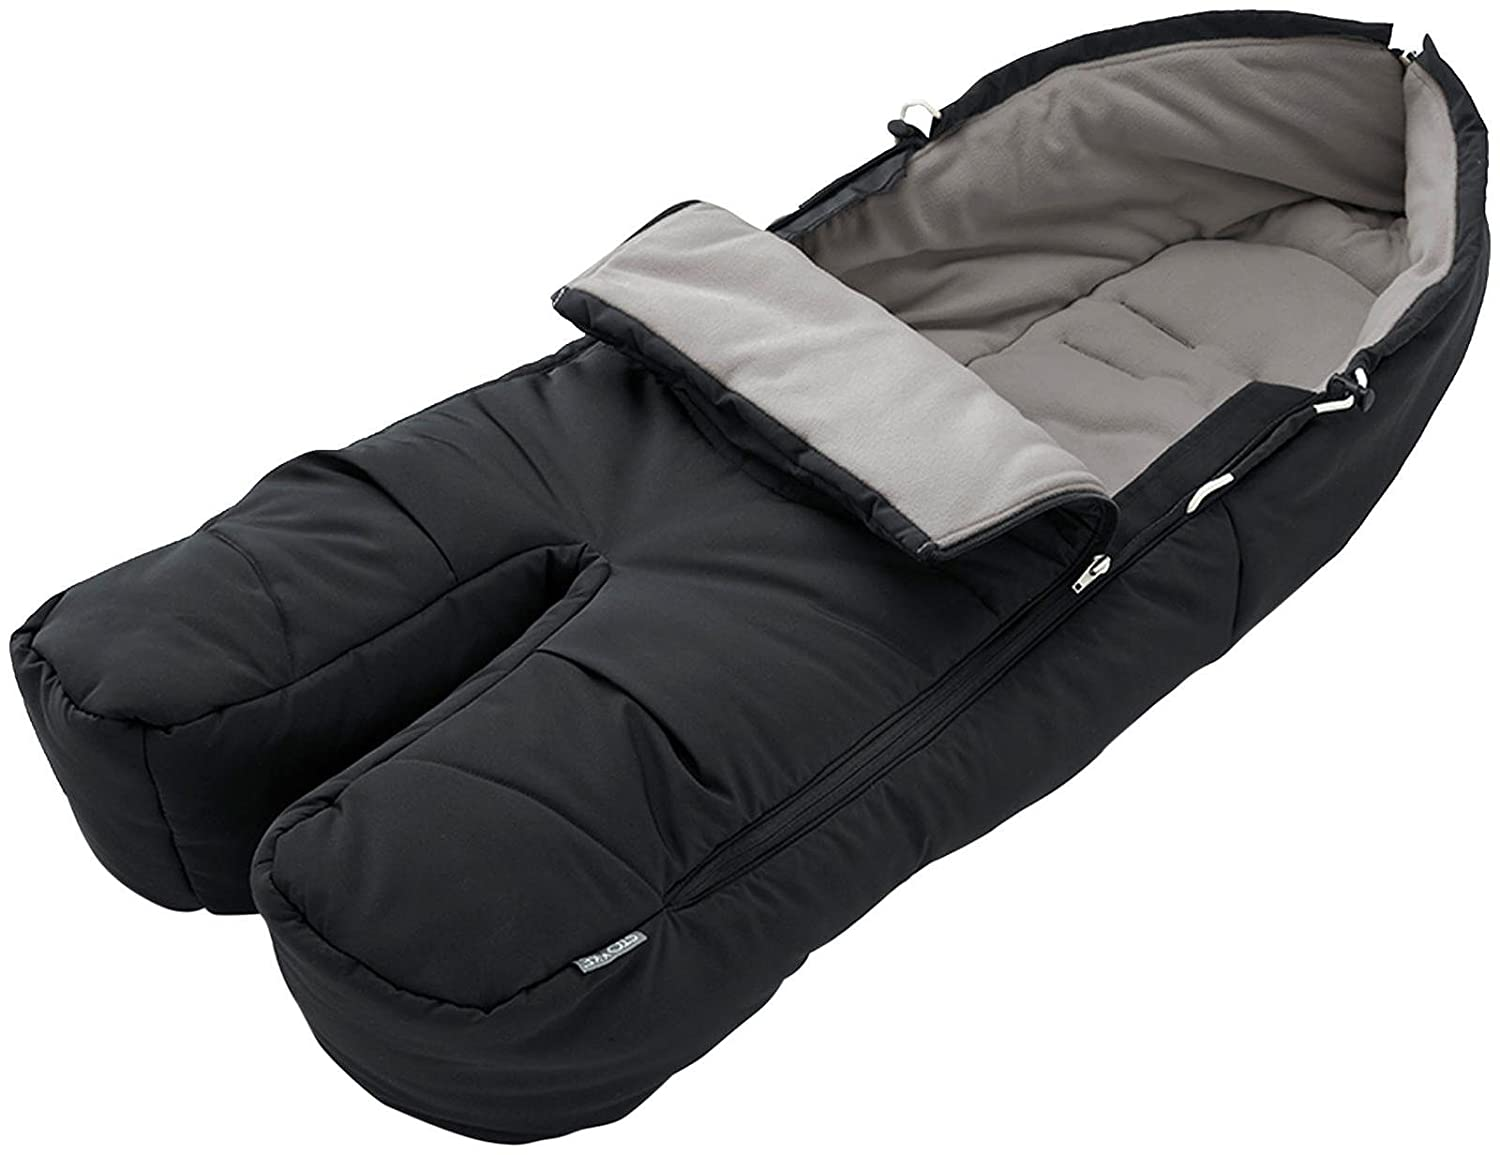 Stokke Footmuff - Black